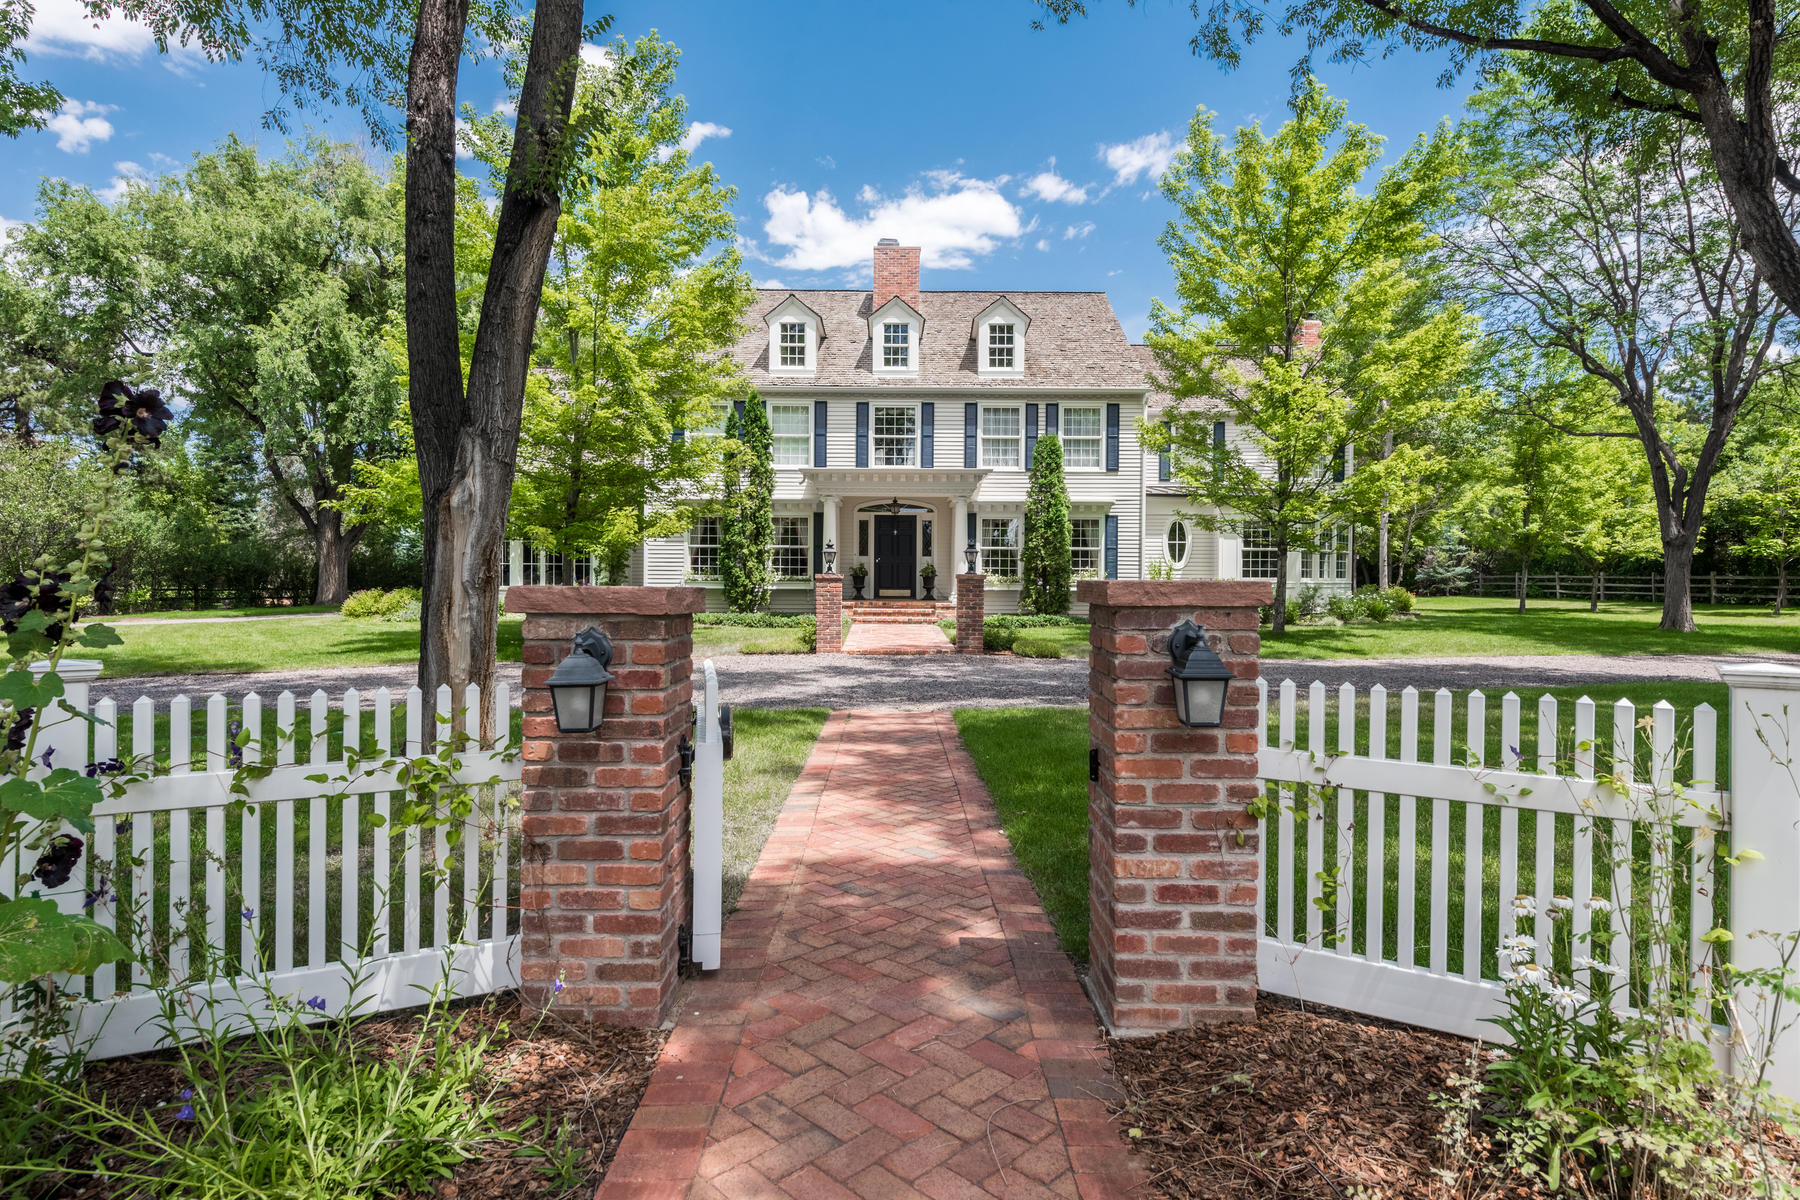 Property for Active at This elegant country manor is richly appointed and recently updated throughout 4682 S Franklin St Englewood, Colorado 80113 United States